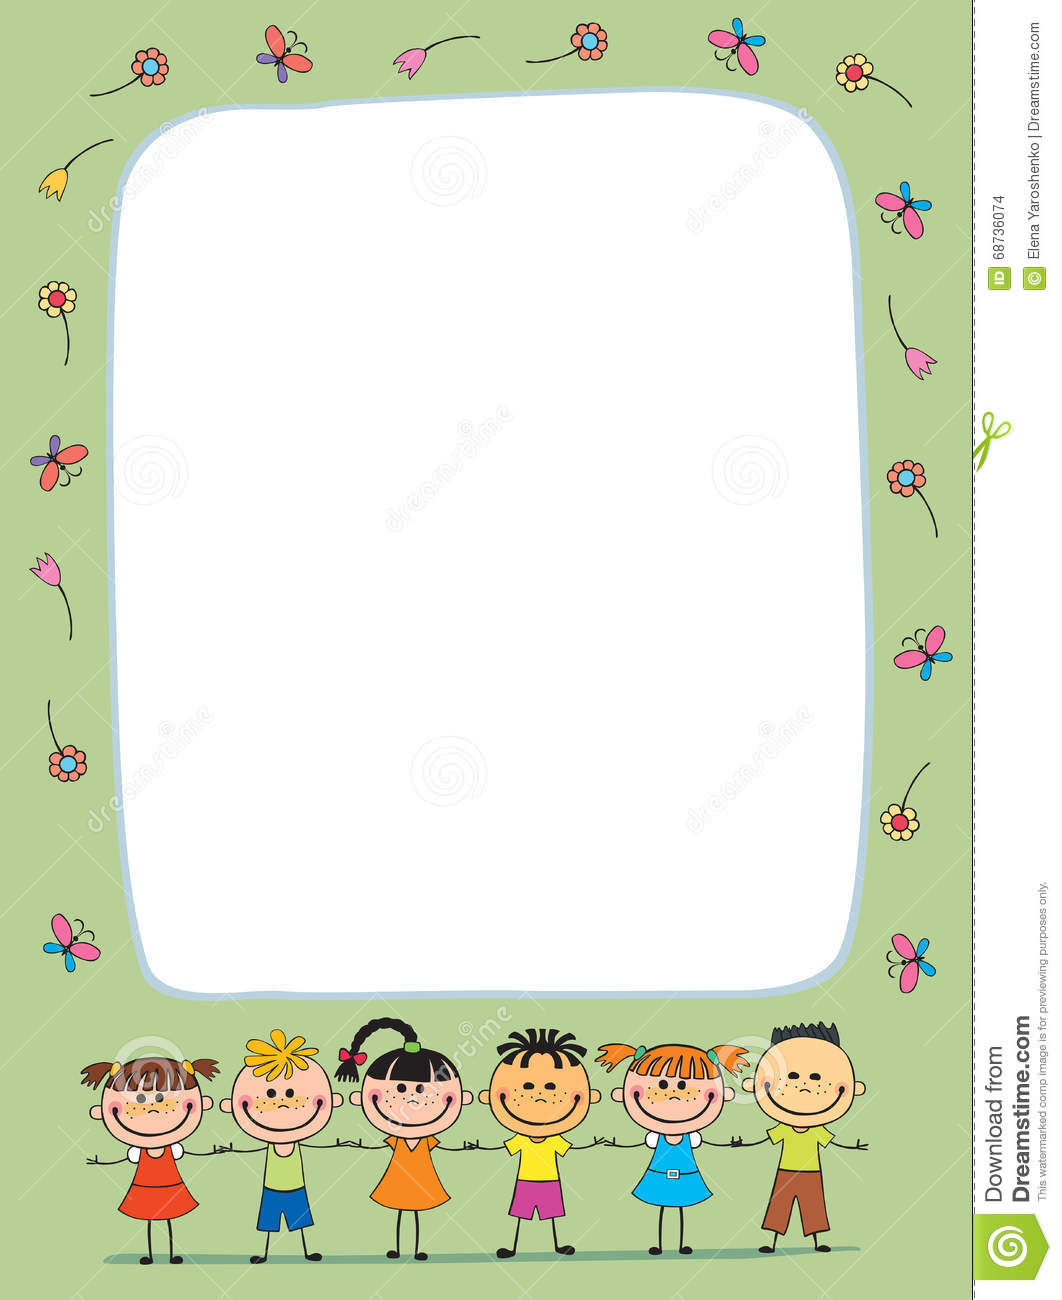 Vector Background Blank With Kids Summer Camp Stock Vector - Image ...